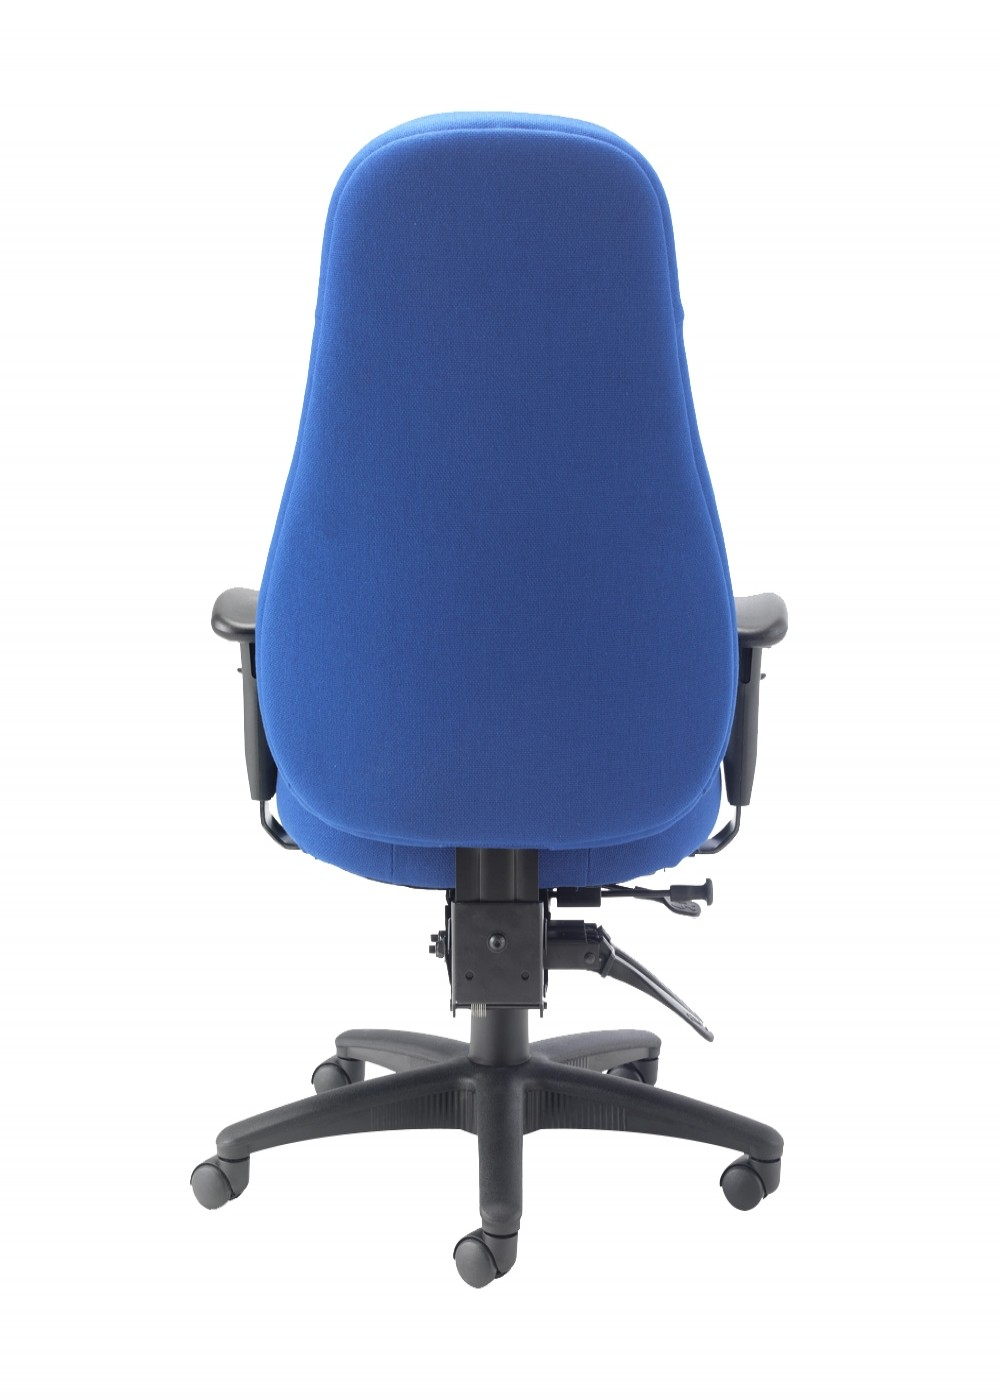 High back fabric office chair - Tc Office Cheetah High Back Fabric Office Chair Ch1111ma Enlarged View